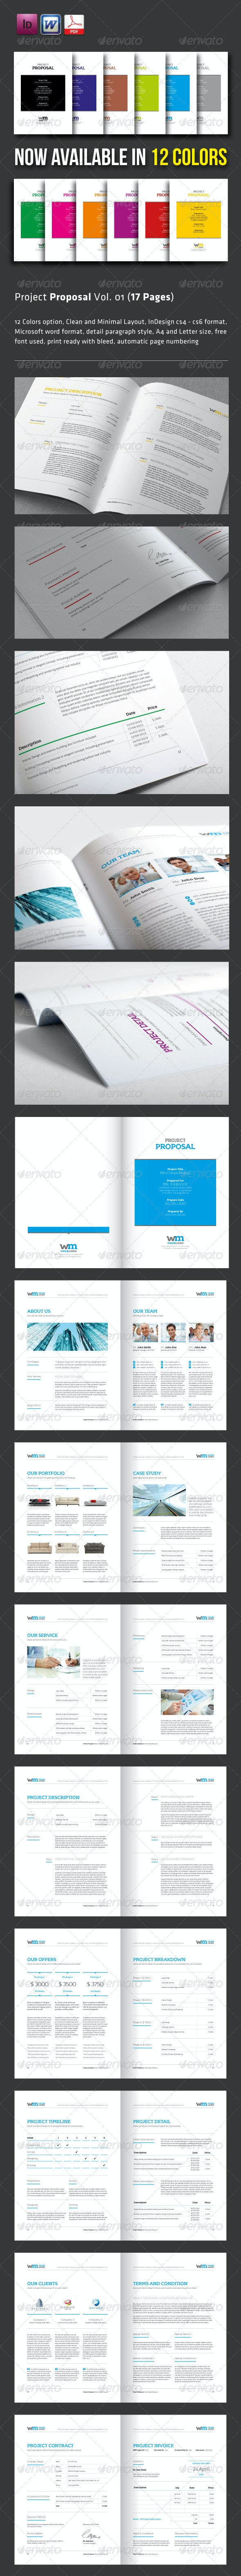 Proposal Template Vol. 01 (17 Pages) - Proposals & Invoices Stationery